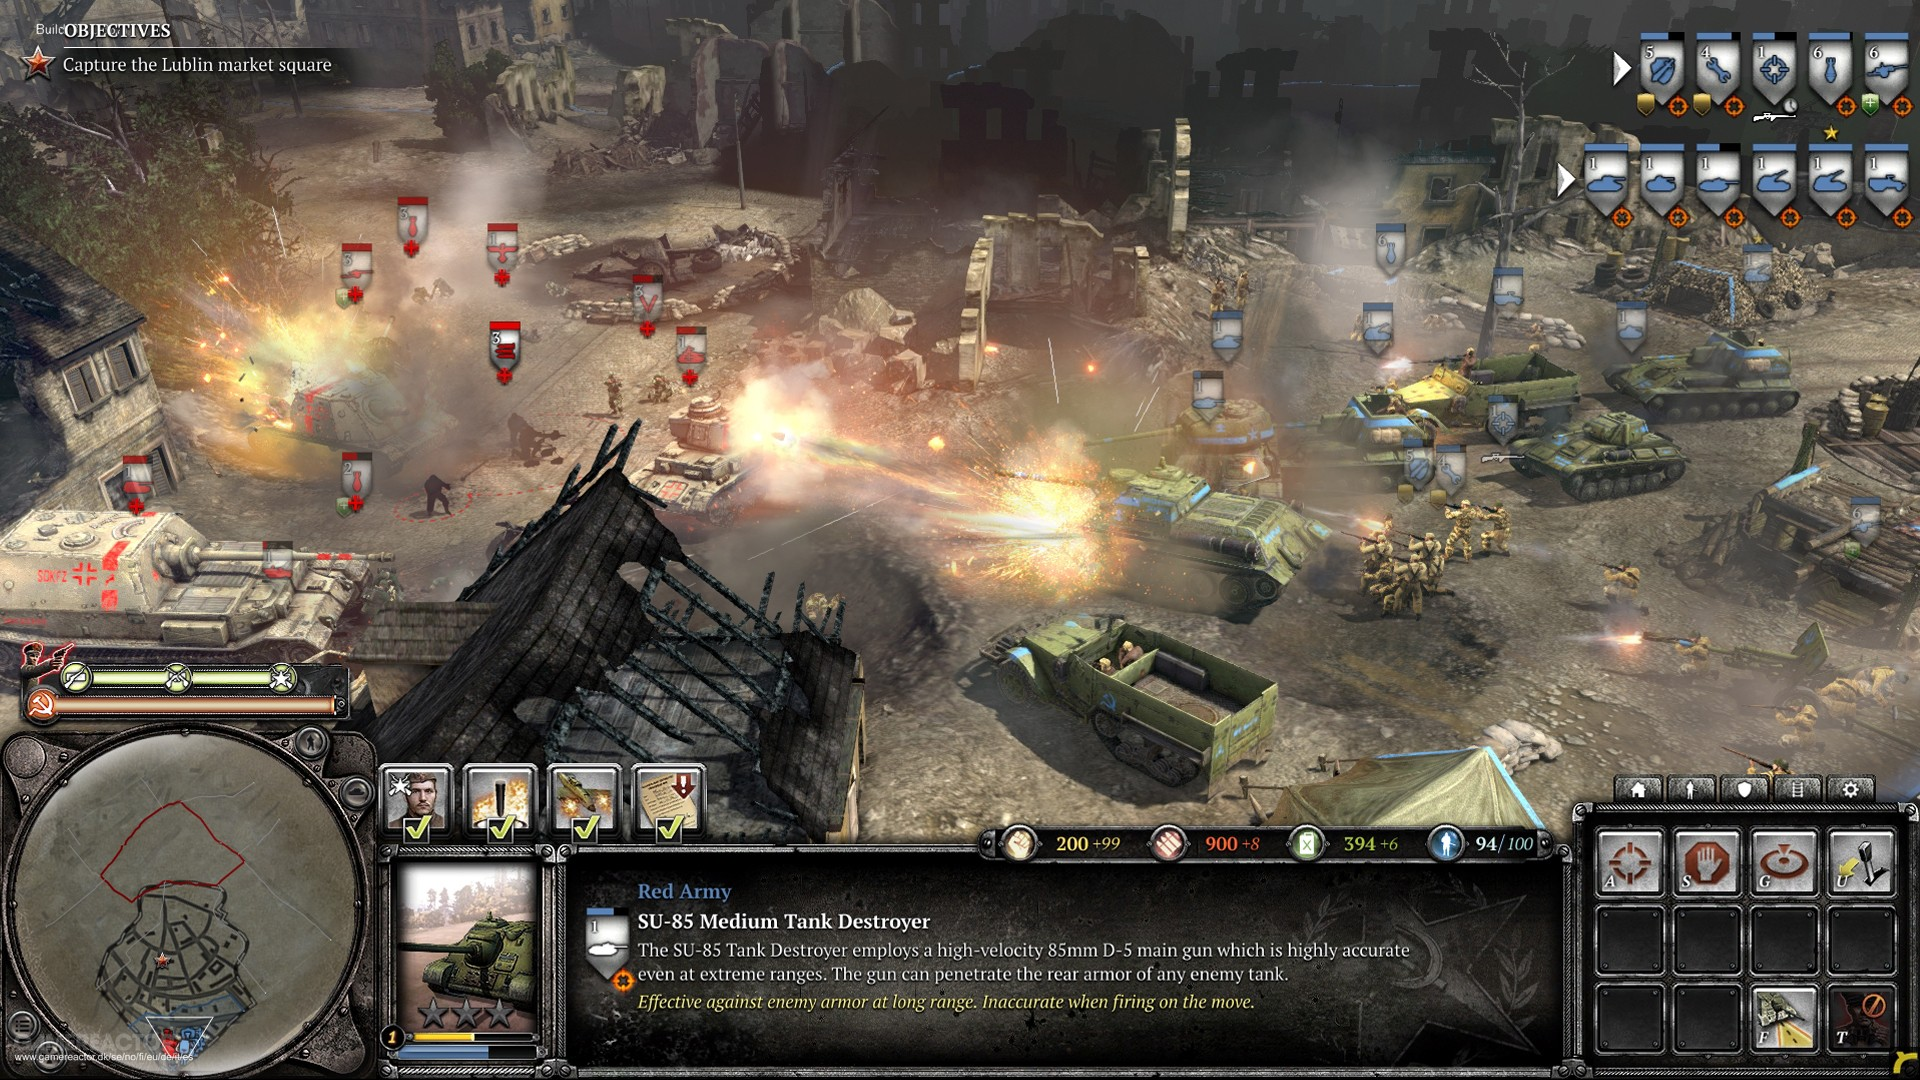 Pictures Of Company Of Heroes 2 Screen Gallery 37 39